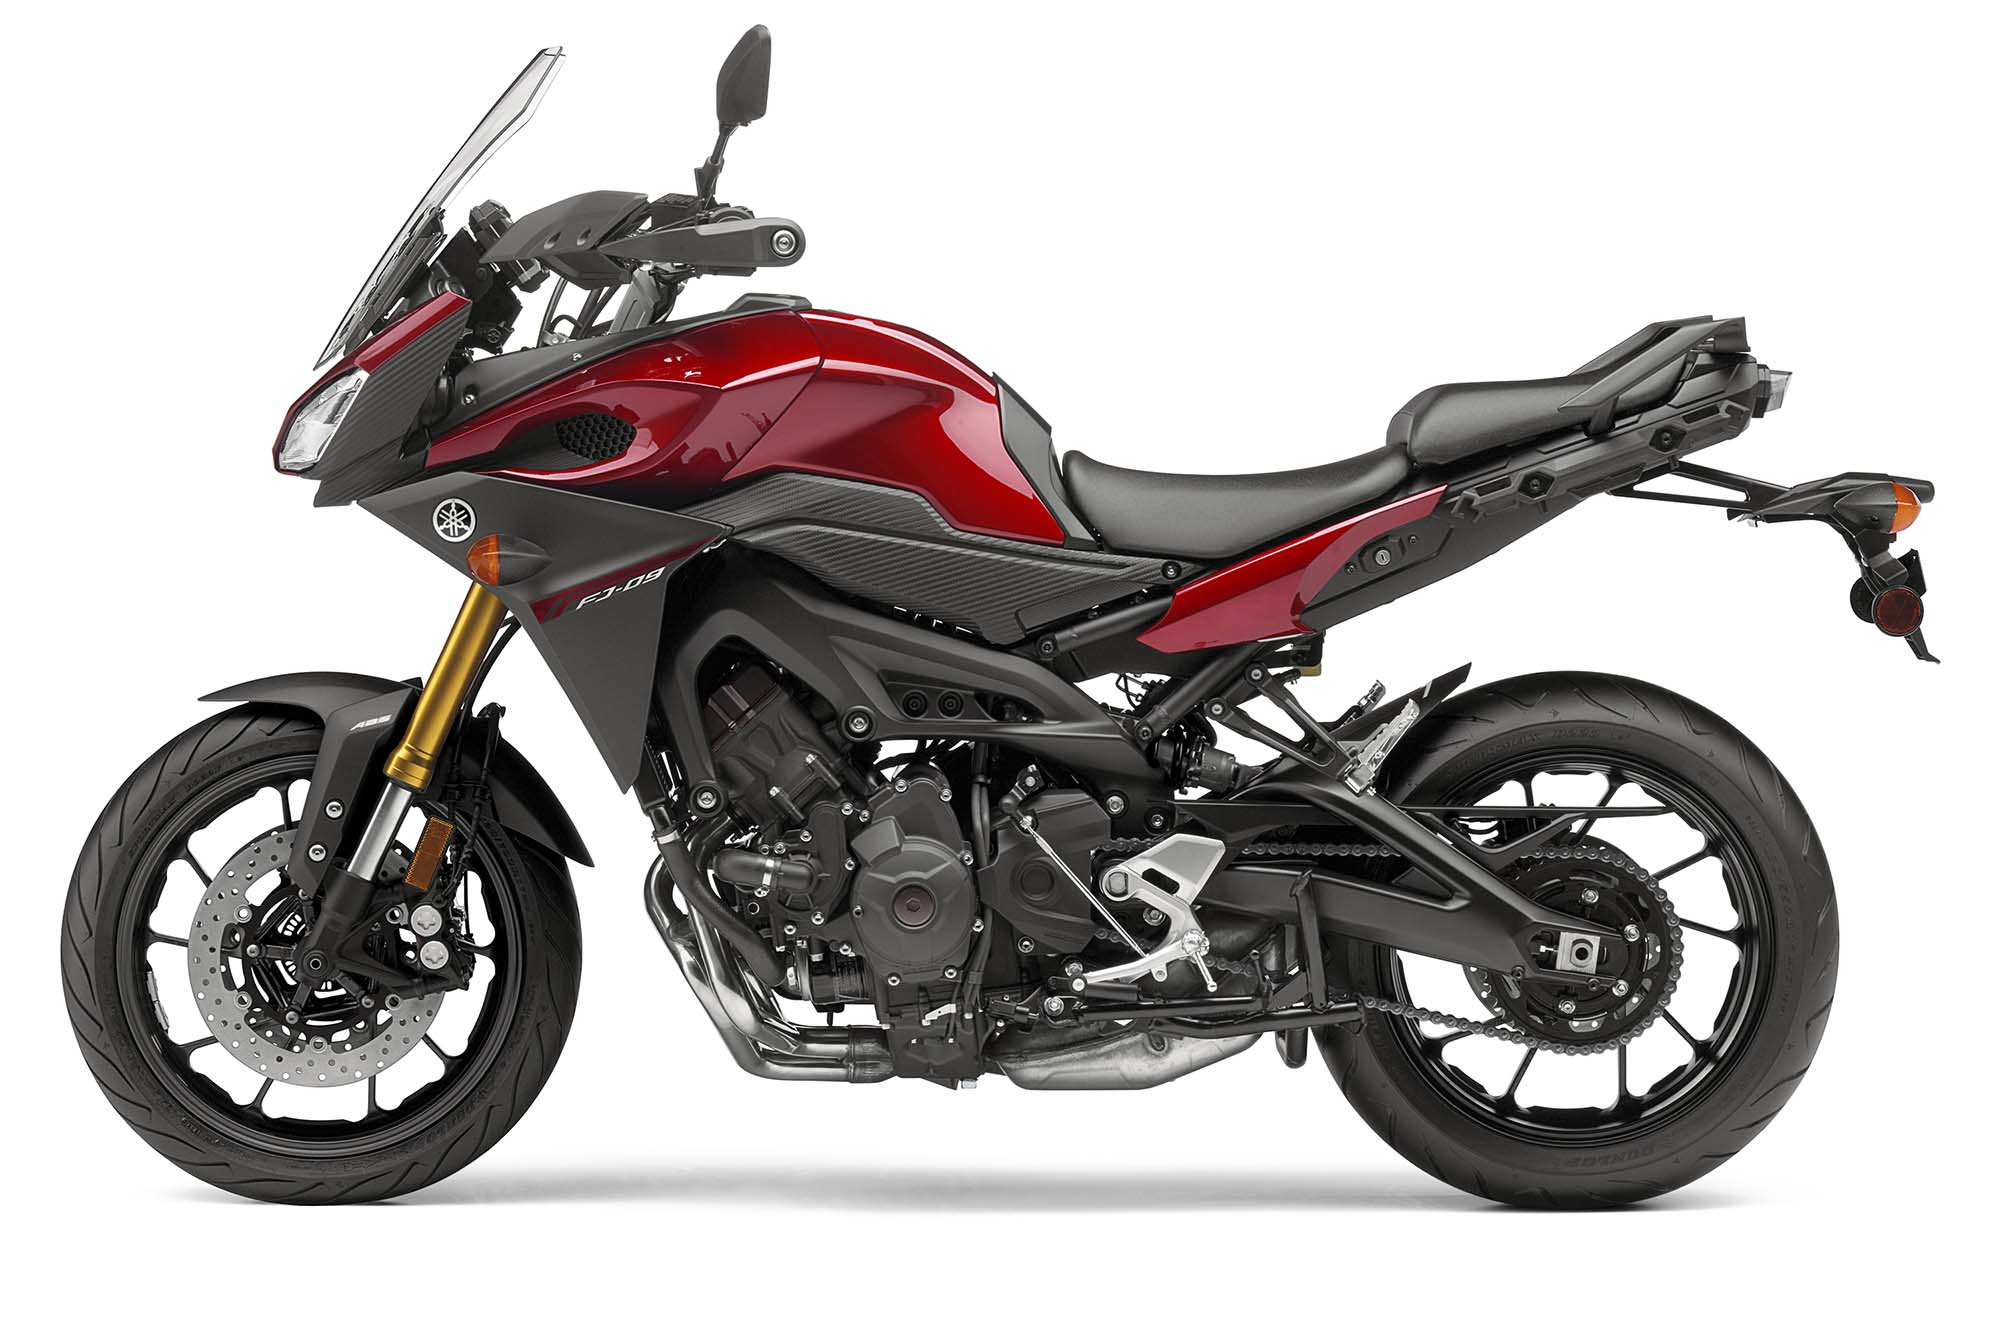 Yamaha Fz 09 >> 2015 Yamaha FJ-09 - Three Cylinders of Budget Touring - Asphalt & Rubber